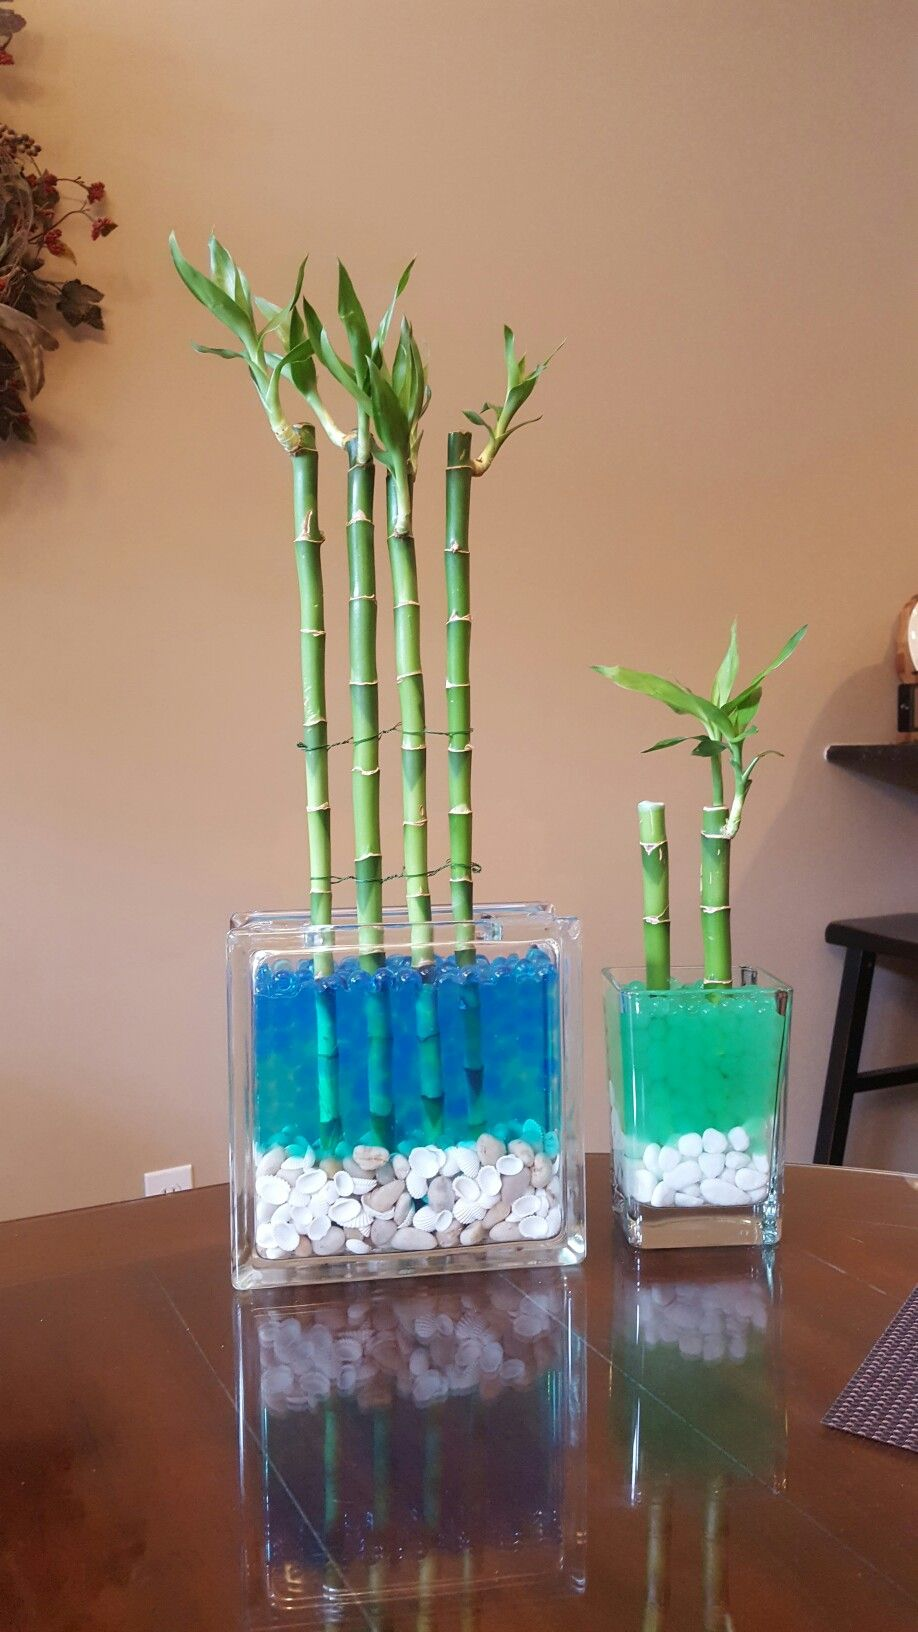 how to care for lucky bamboo plant in rocks